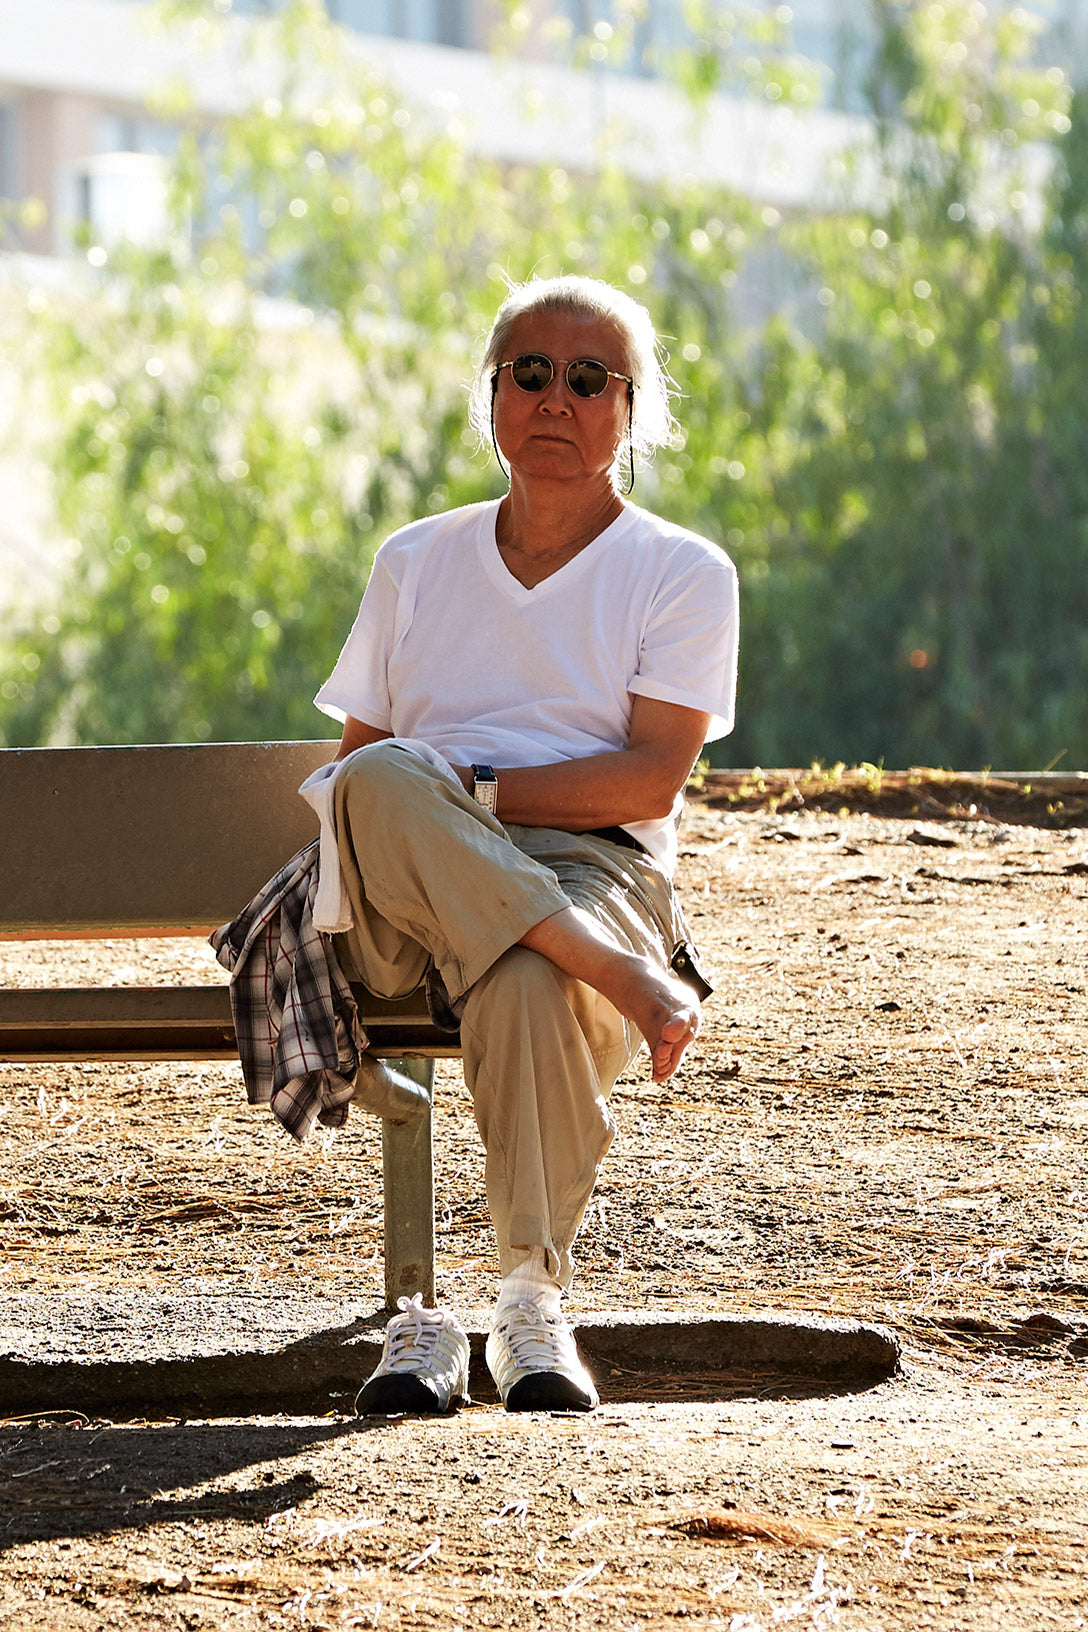 Person sitting on park bench with right shoe off